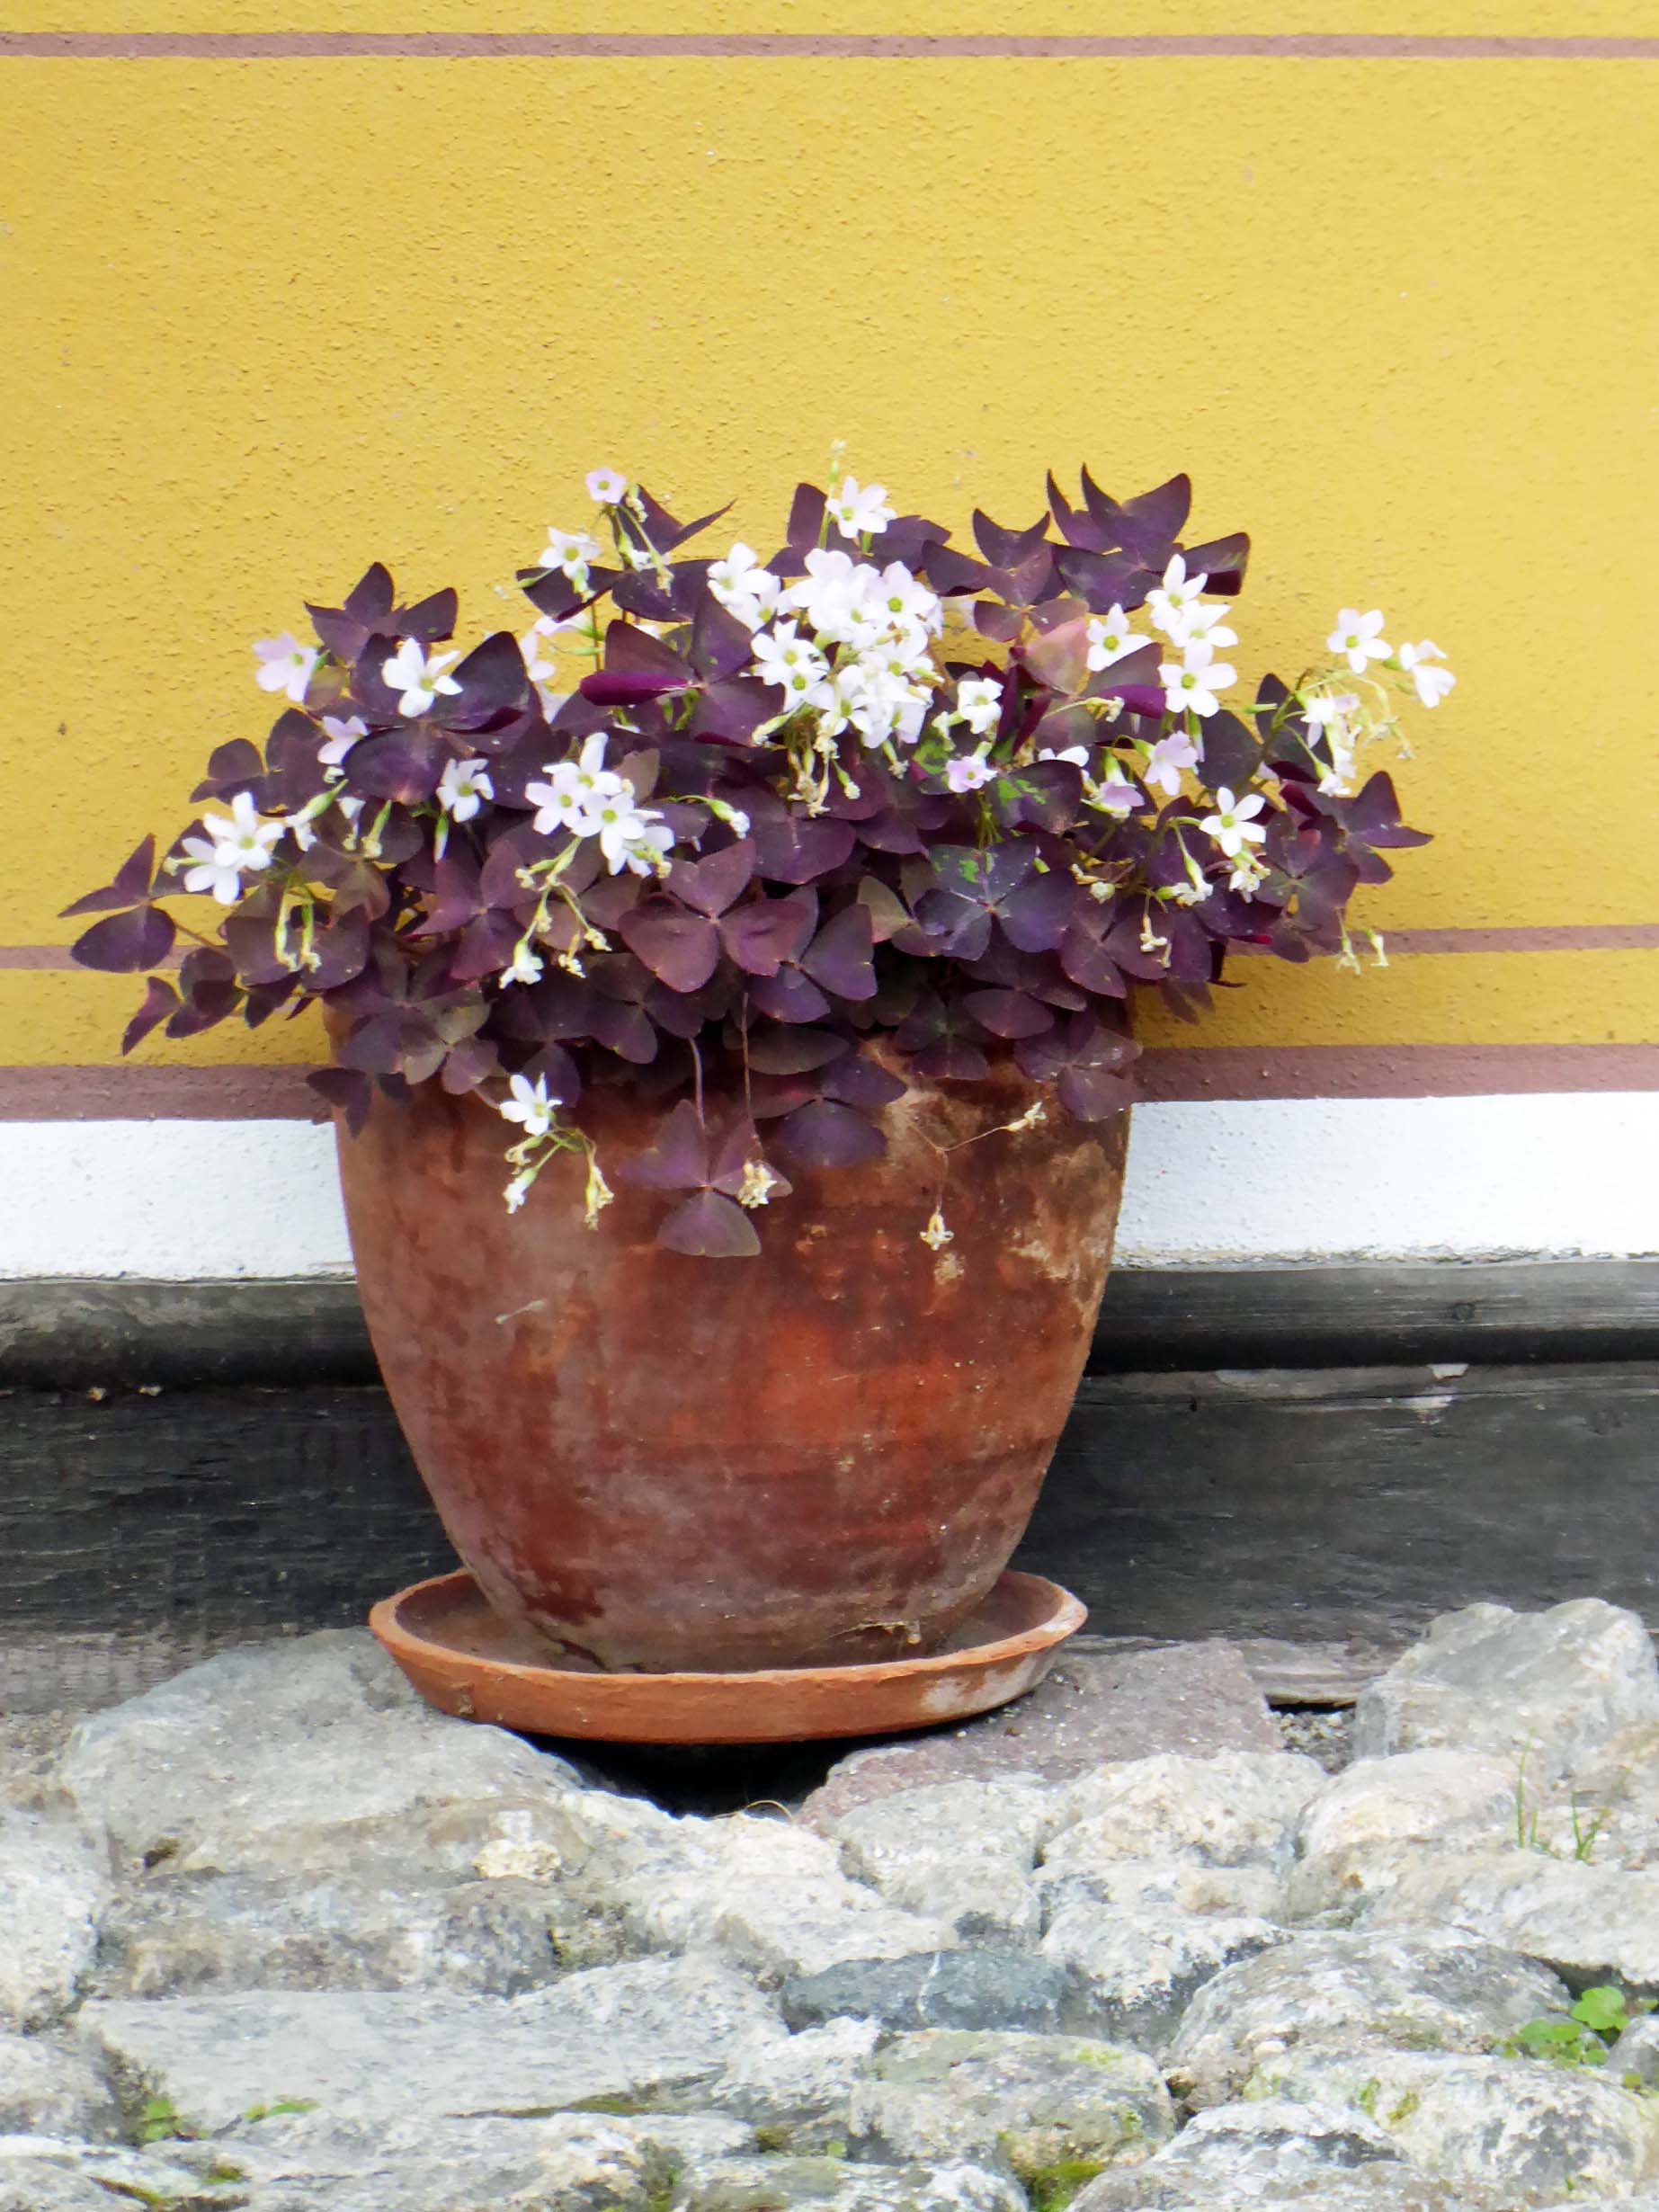 Small pot of white flowers